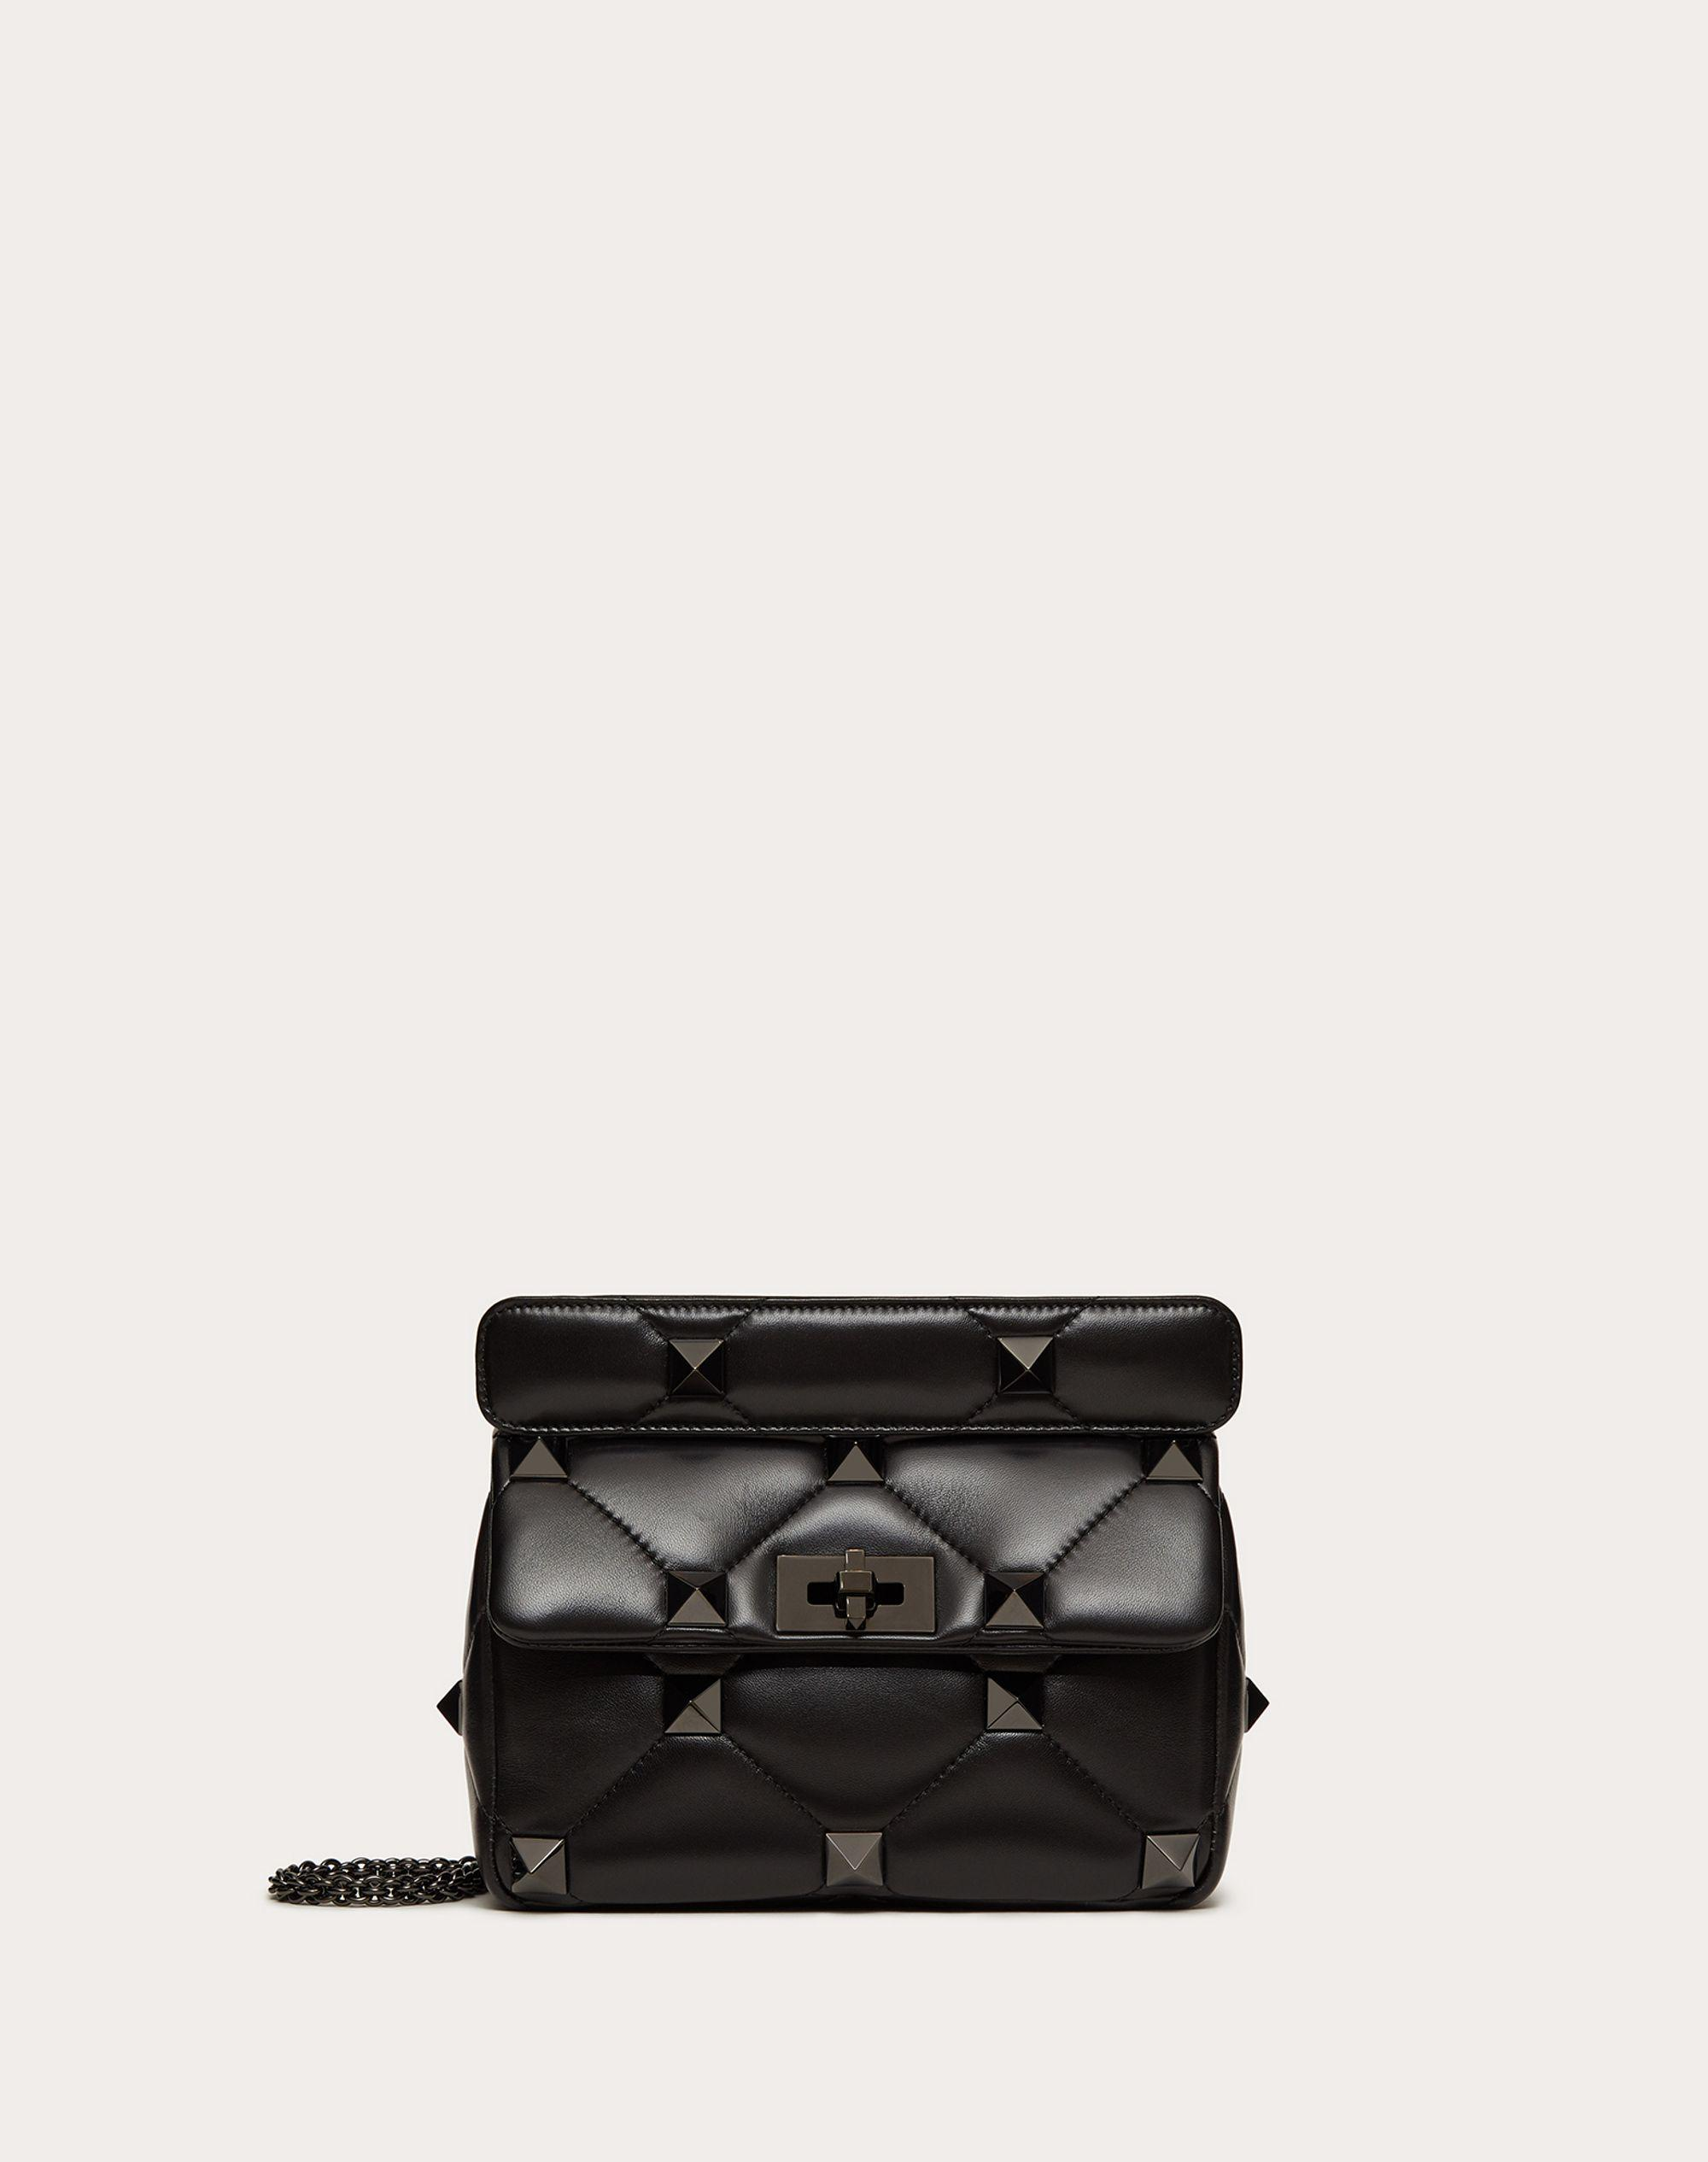 Medium Roman Stud The Shoulder Bag in Nappa with Chain and Tonal Studs